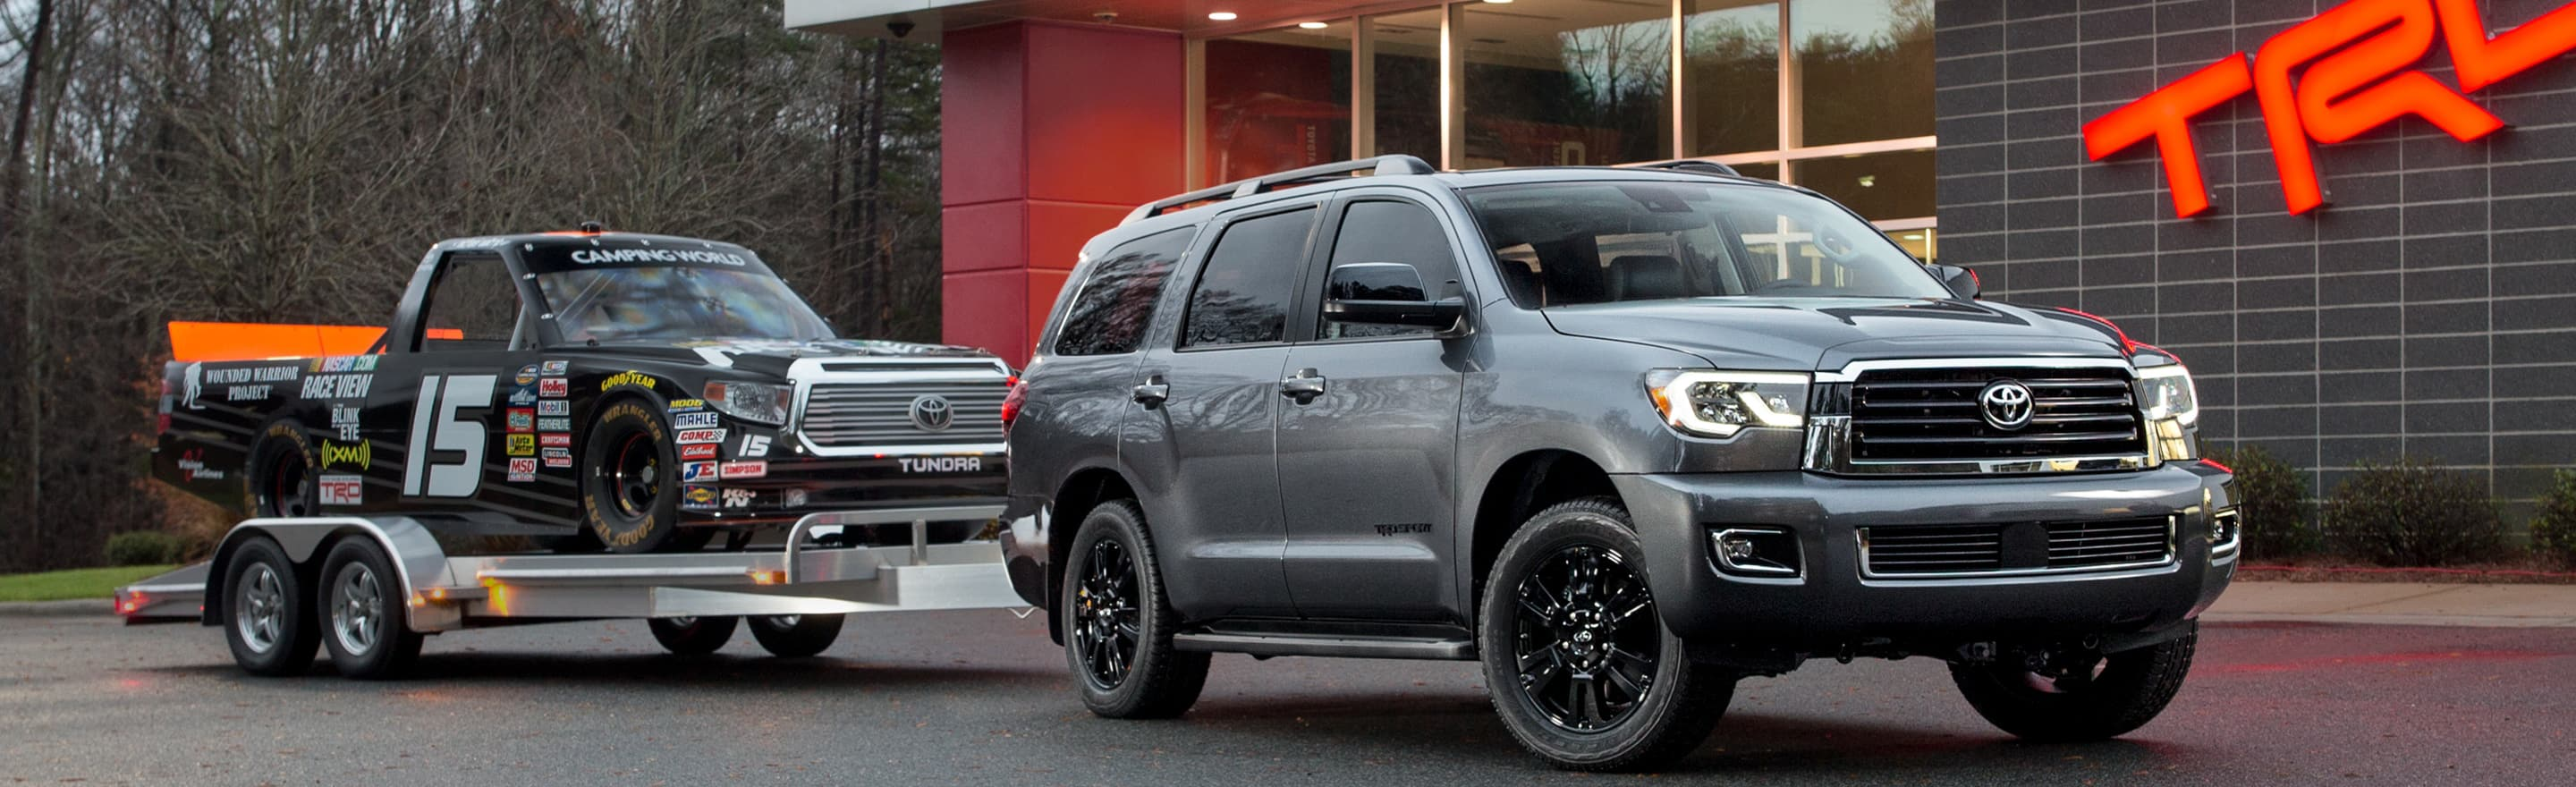 Explore The 2019 Toyota Sequoia Full-Size SUV At Ganley Toyota